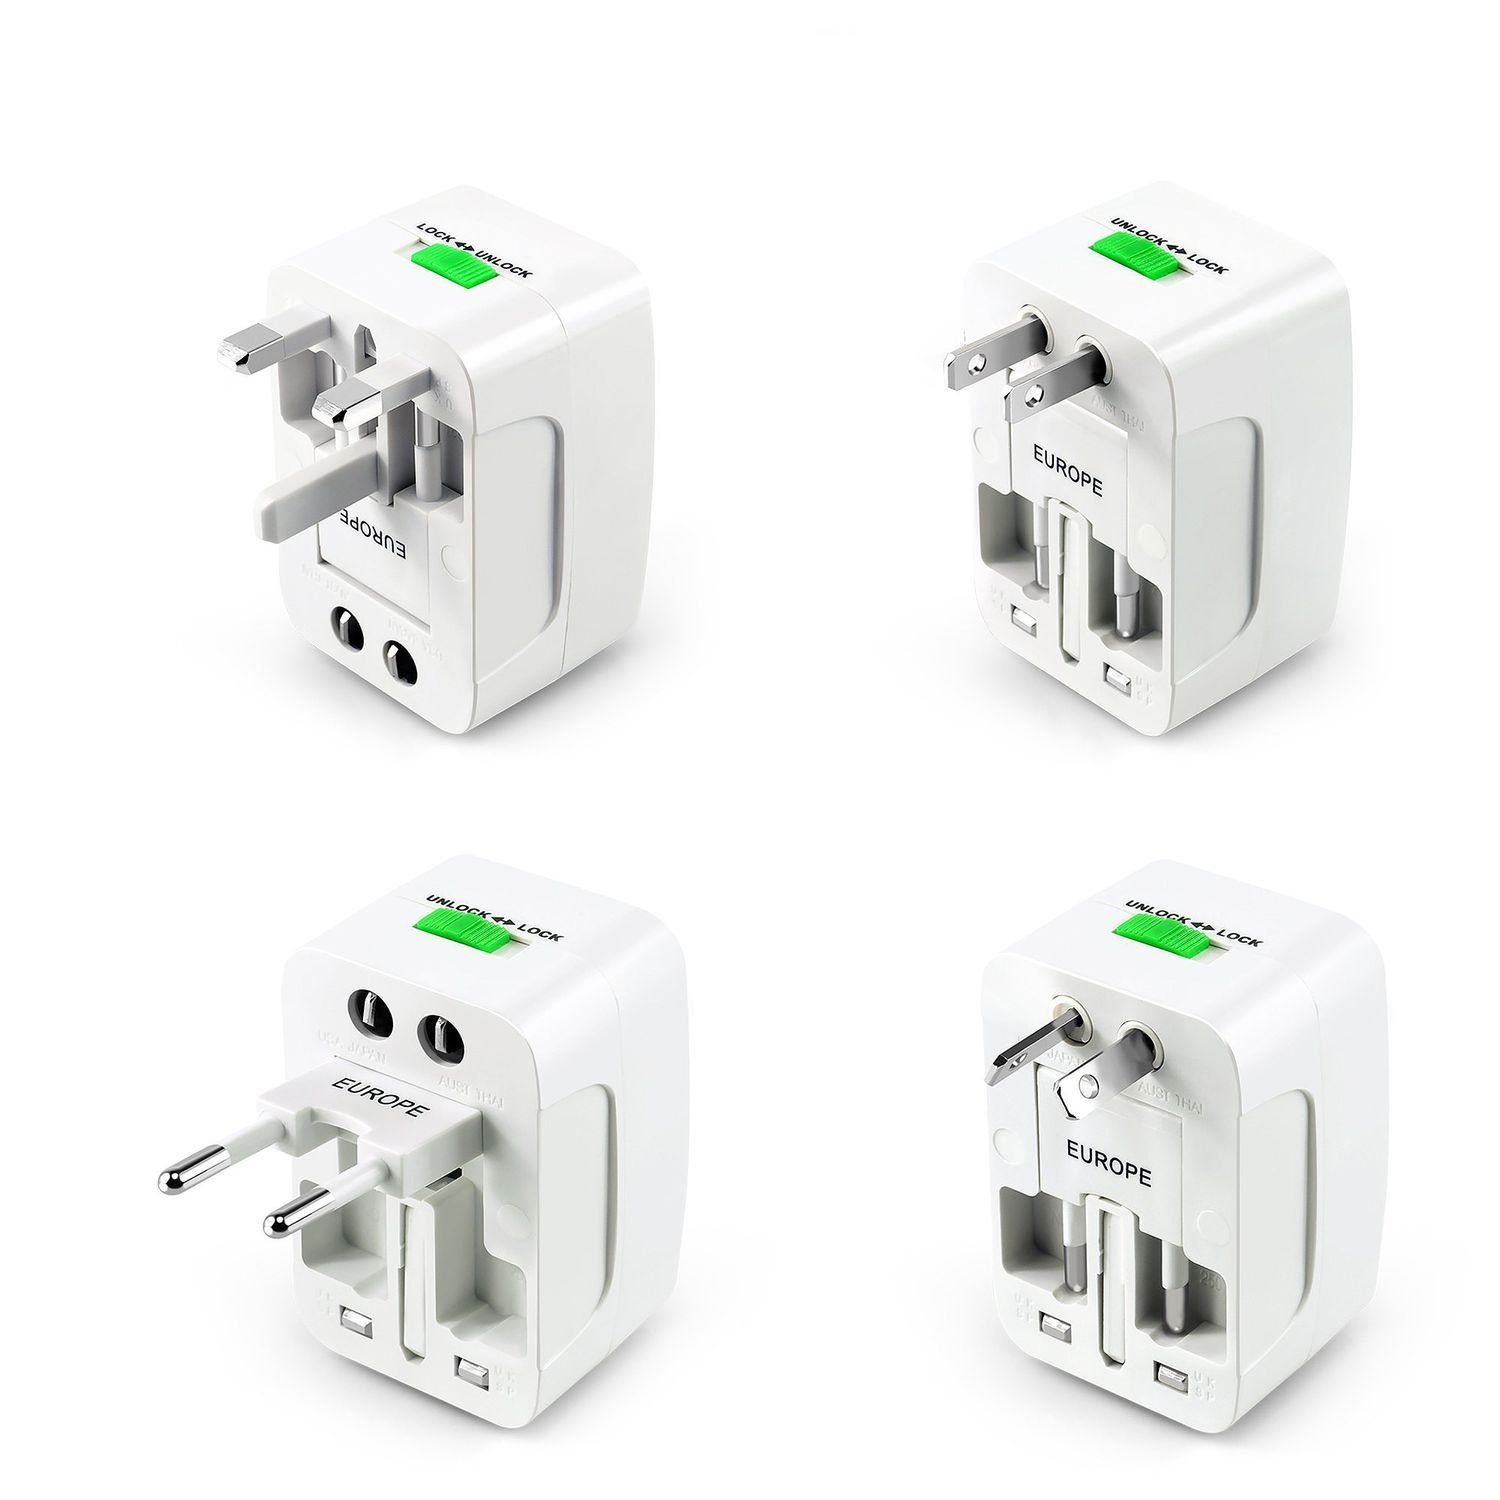 Insten Universal World Wide Travel Charger Worldwide Socket And Plug Apparatus For Dc Power On Wiring Australia Adapter Compatible With Iphone X 8 Lg G6 Samsung Galaxy S8 Plus